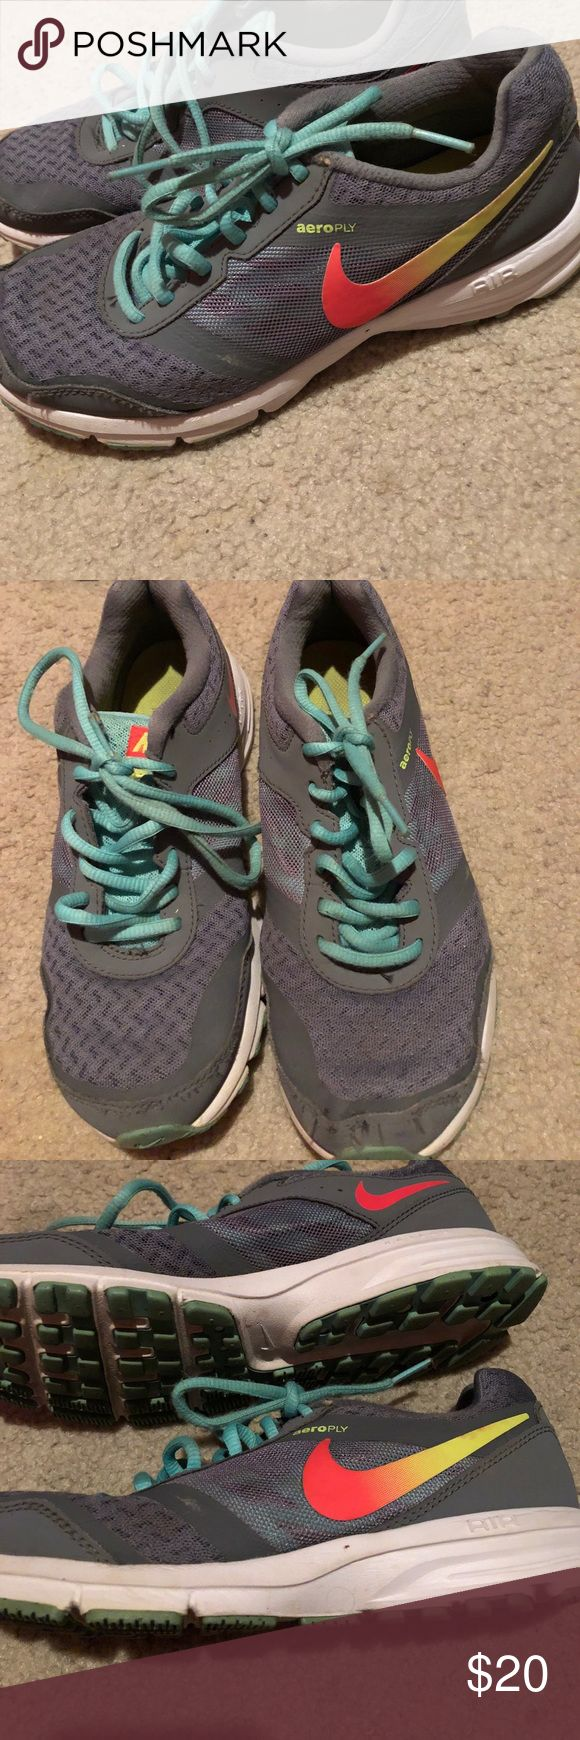 Women's Nike Running Shoe Size 7 Air Relentless 4 Nike Shoe Size 7 Women's. Very good used condition Nike Shoes Athletic Shoes